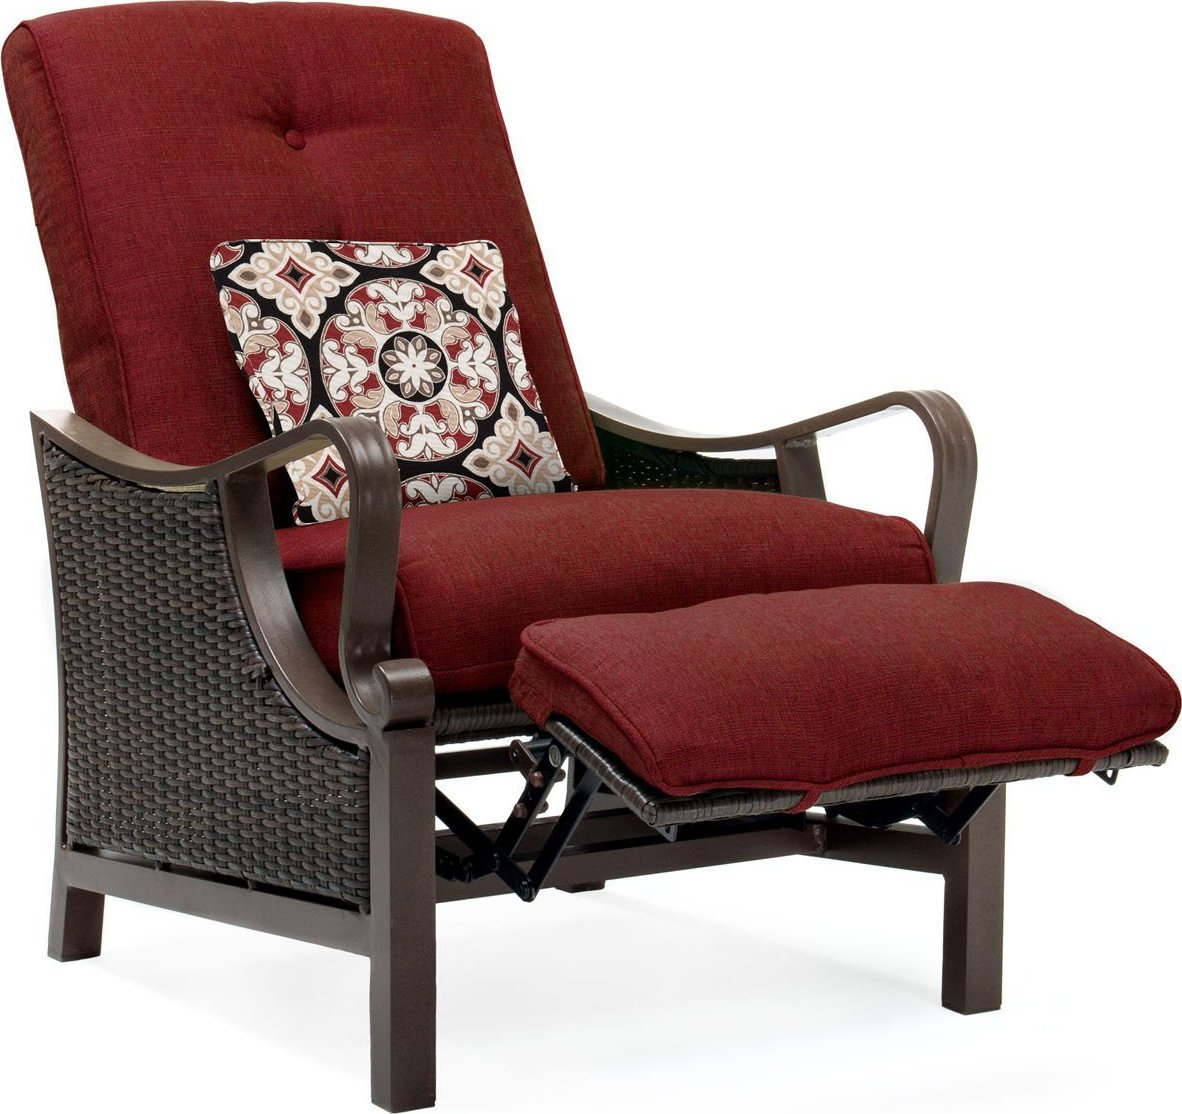 ventura luxury resin wicker outdoor recliner chair at